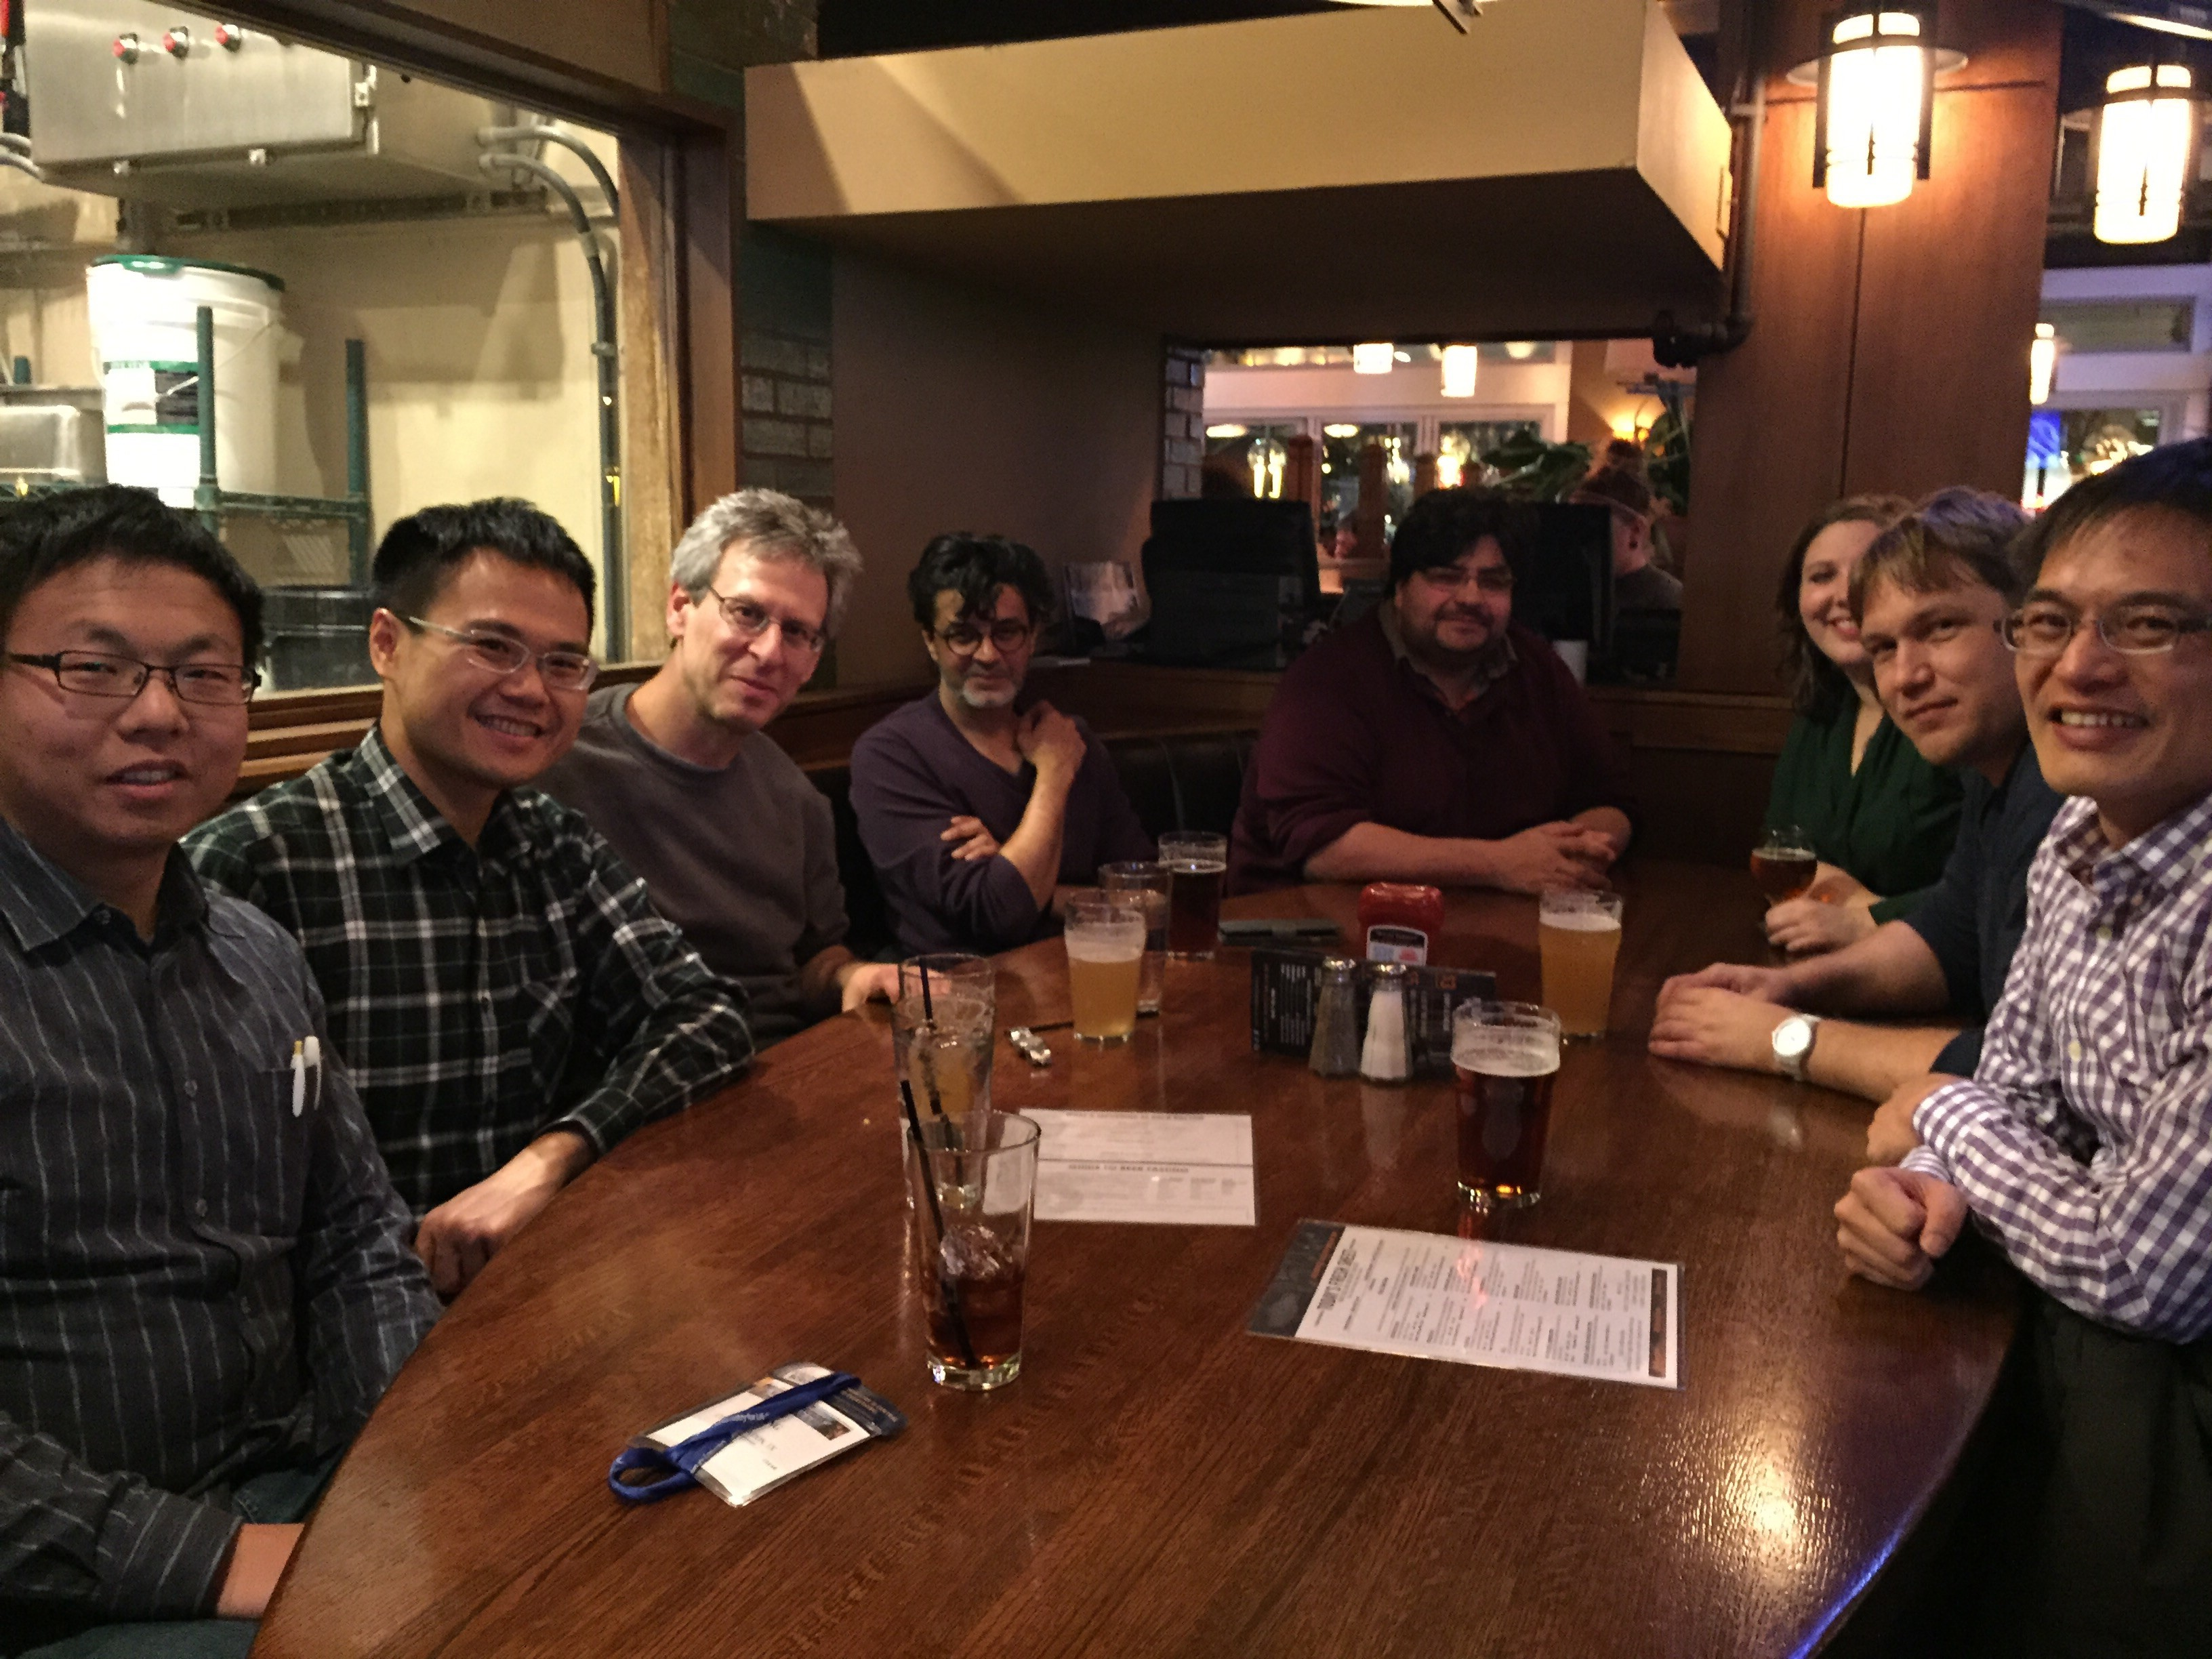 Dr. Cremer and former group members Dr. Wei-Ssu Liao (second from left) and Dr. Da Huang (first from left) met at ACS meeting held at Denver, March 22-26, 2015